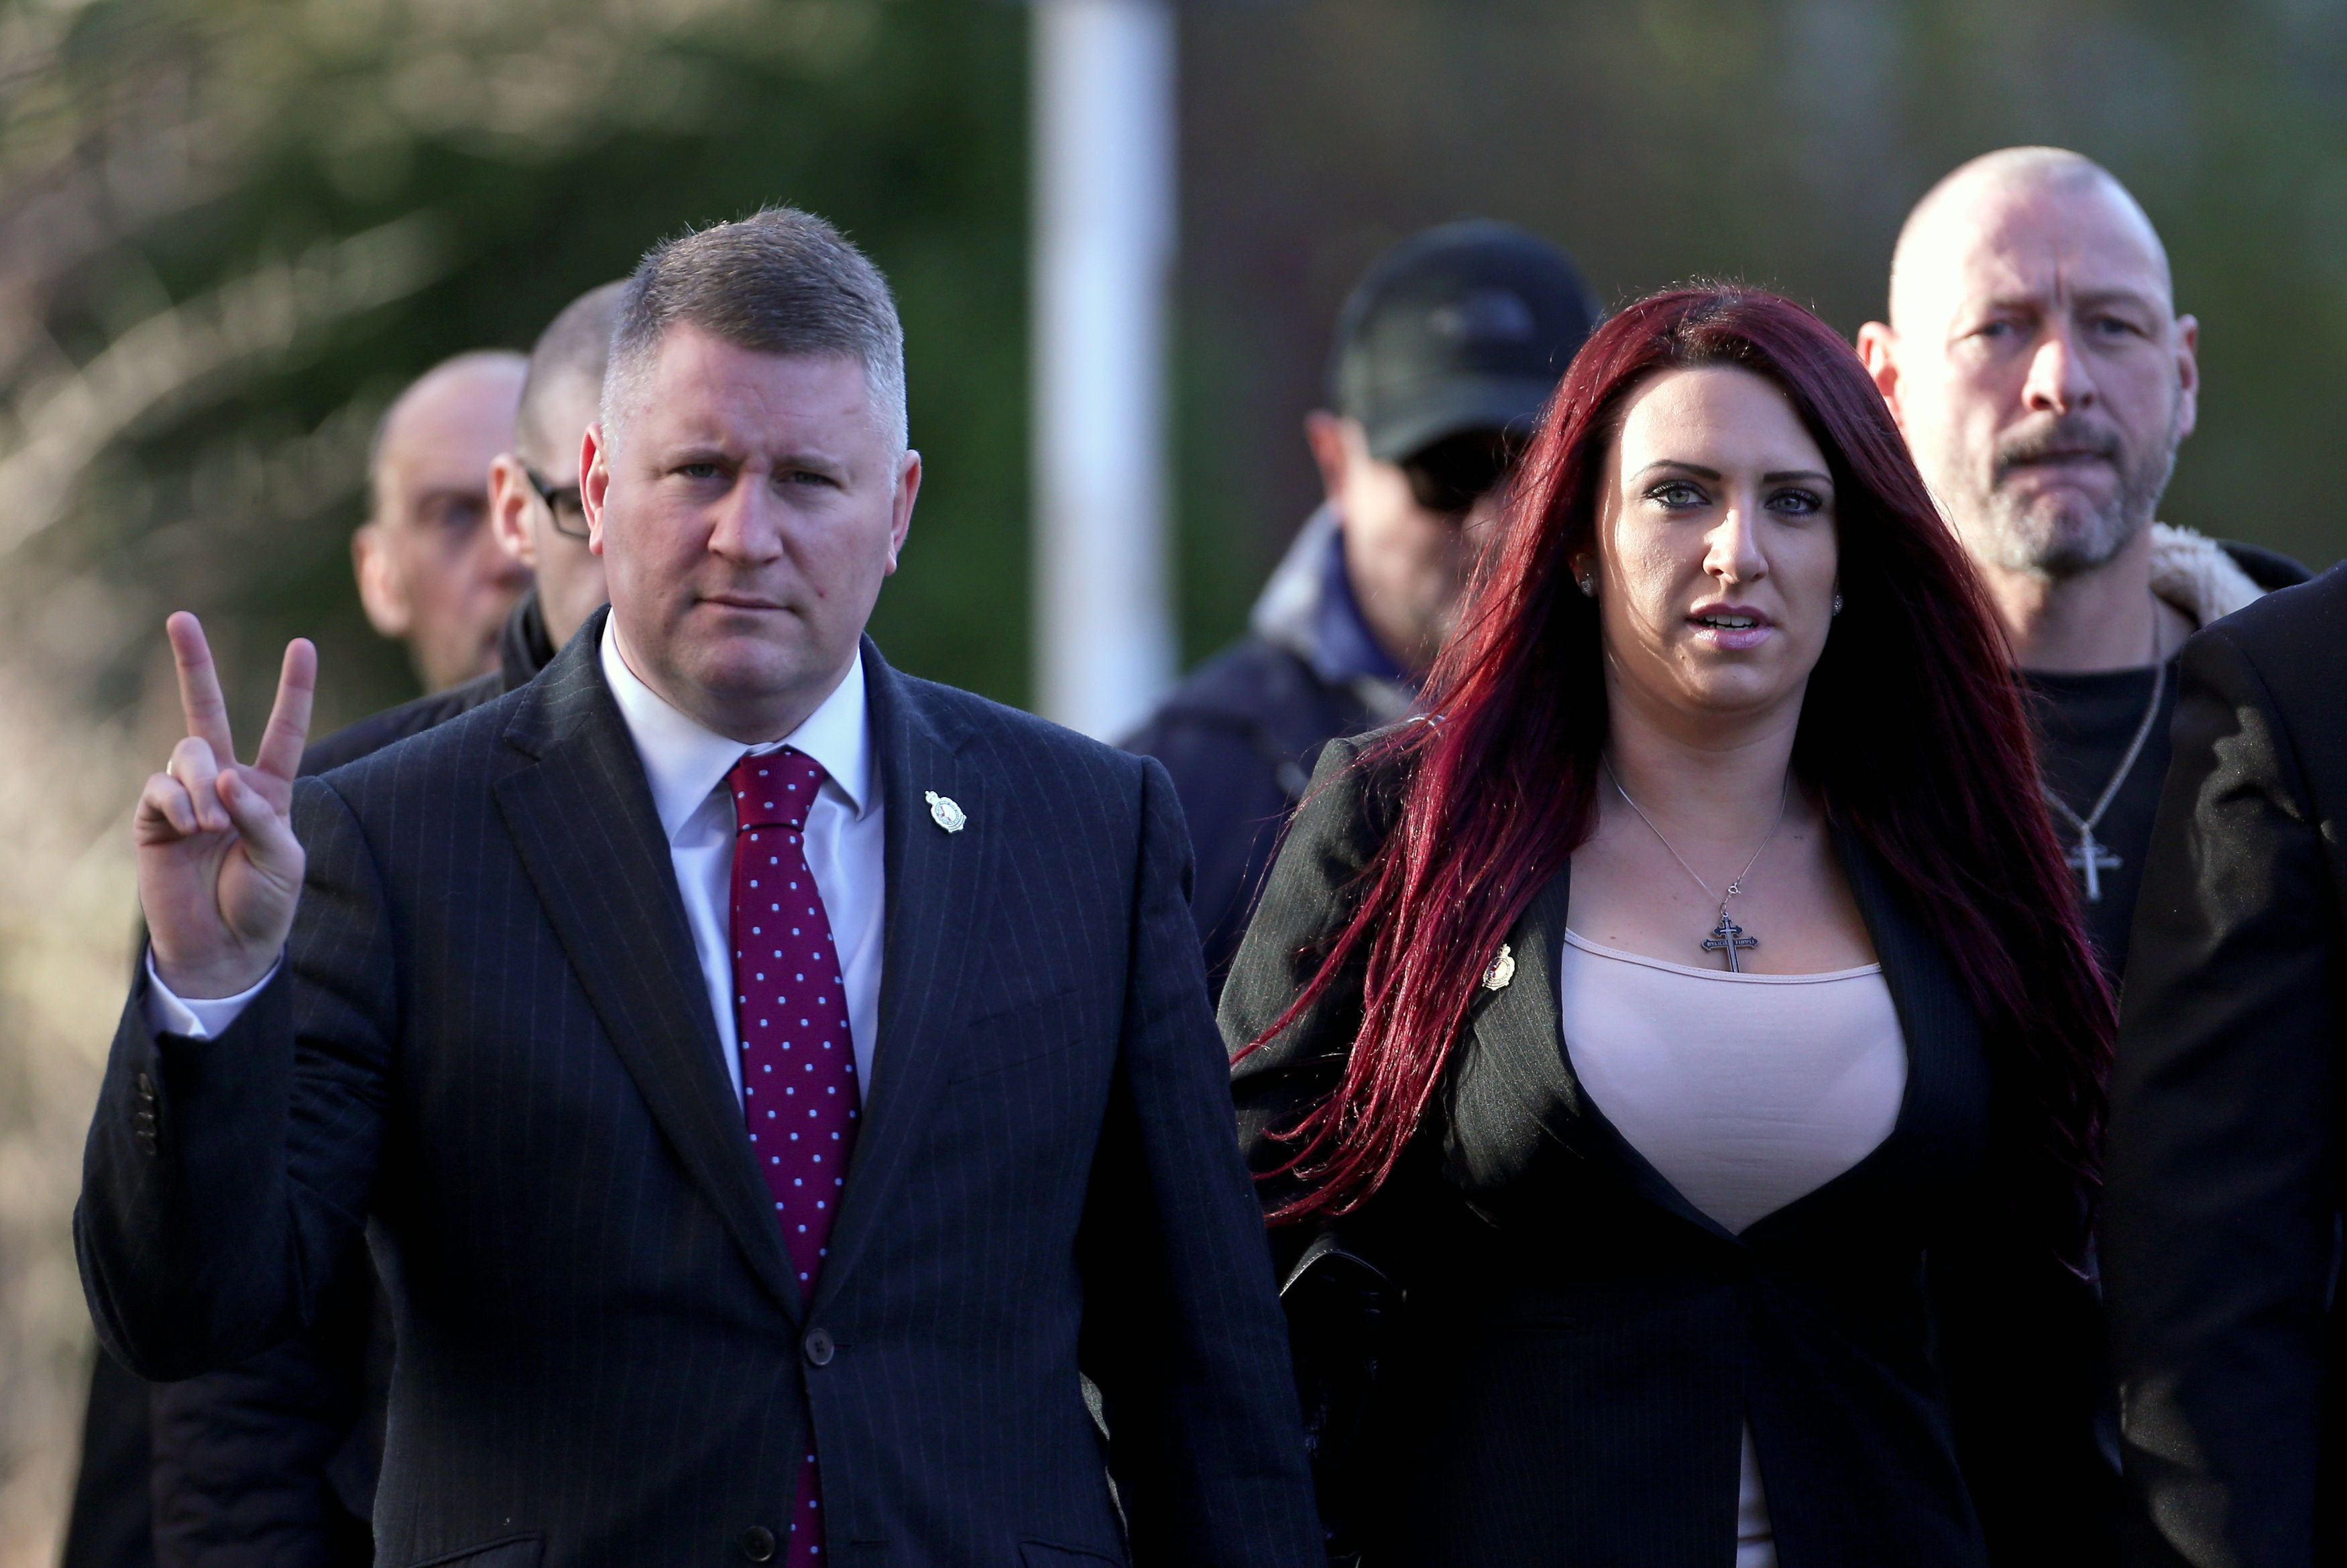 Britain First leaders guilty of harassing rape trial witnesses